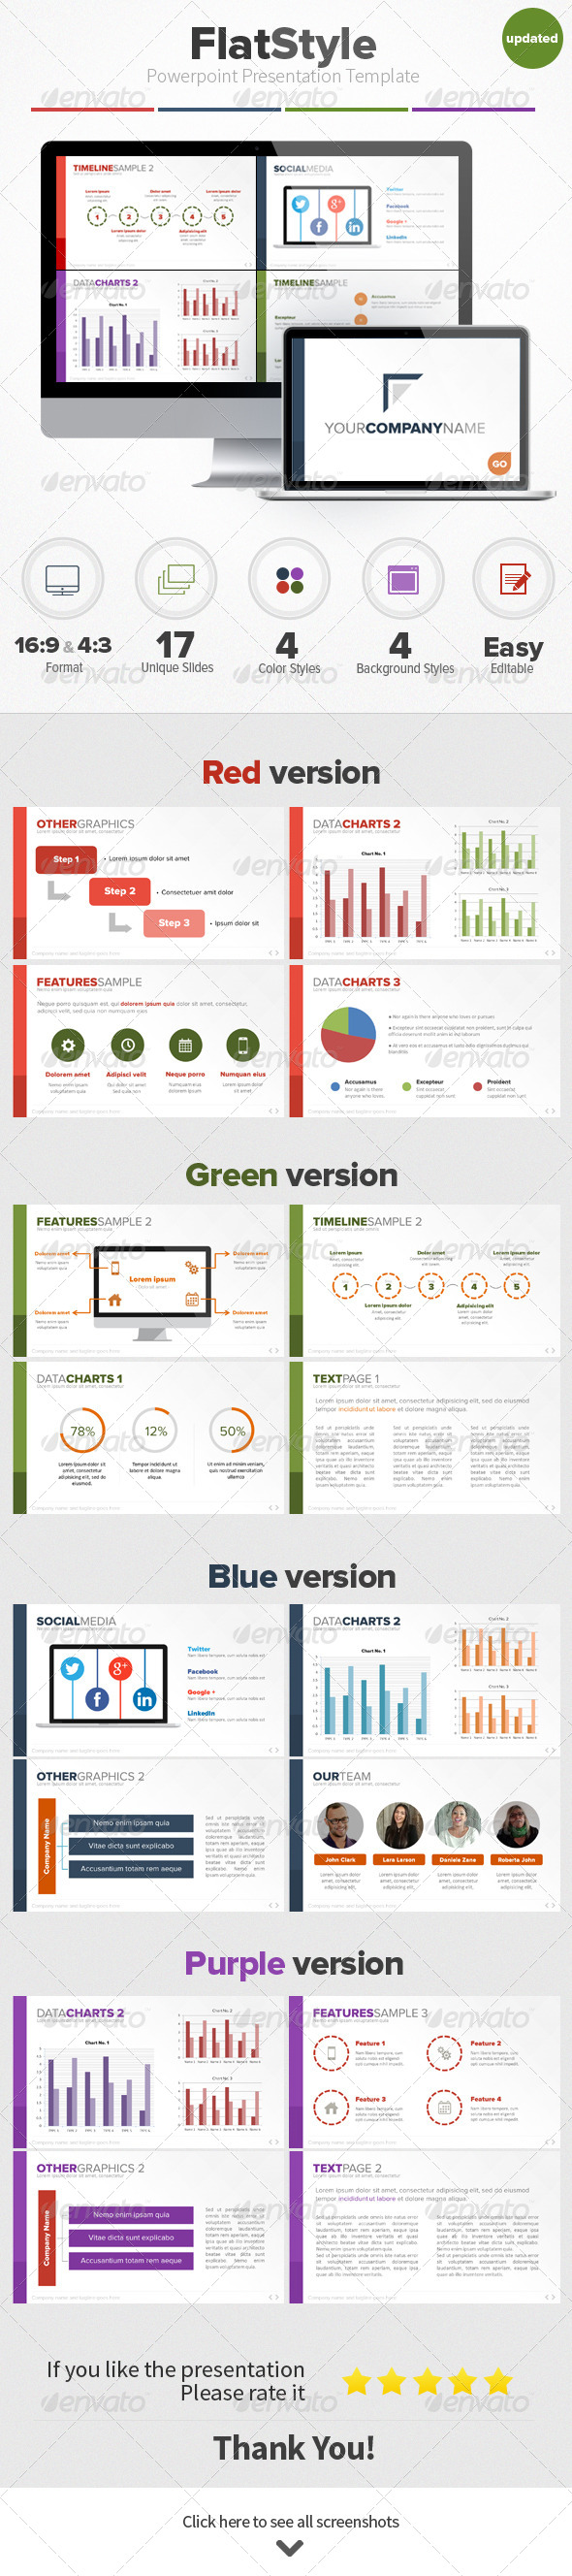 Flat Style Powerpoint Presentation Template - Business Powerpoint Templates